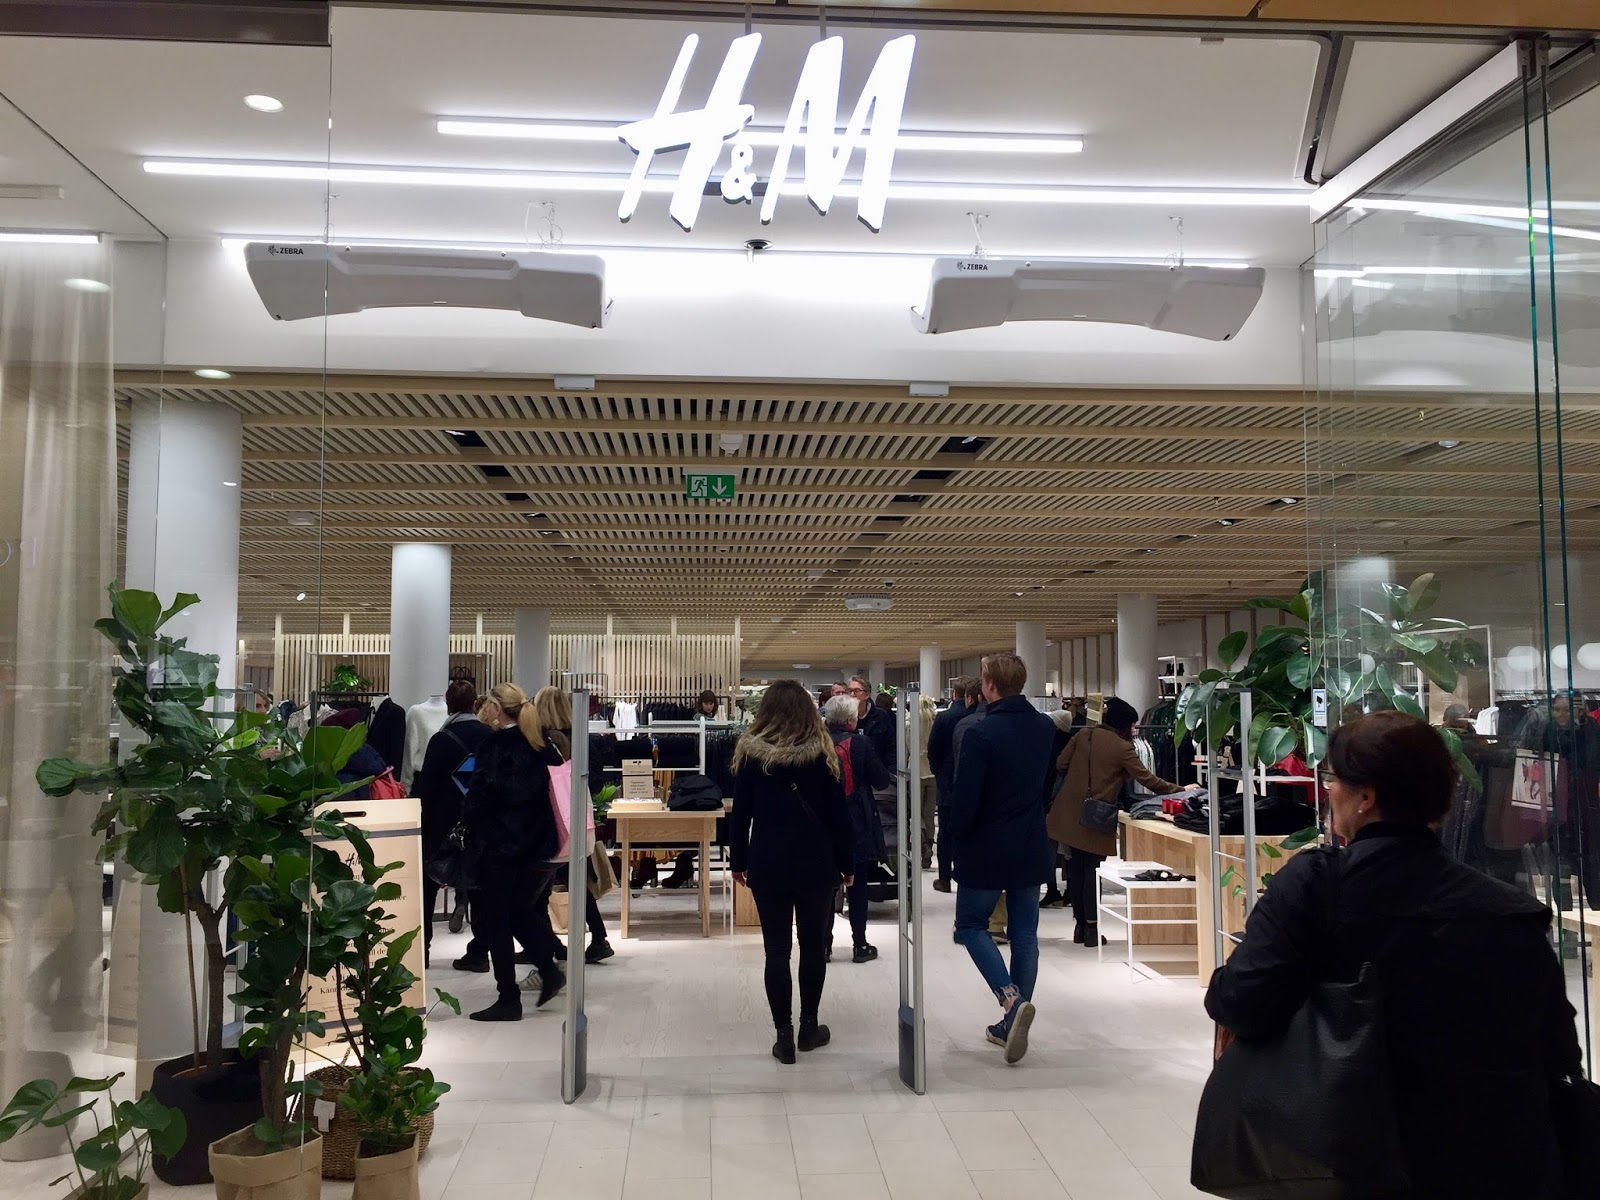 H&M offers online shopping in several markets and we are currently working on rolling out online shopping to all our existing markets. We will therefore limit the content on some of our sites for now, to focus on our online expansion.